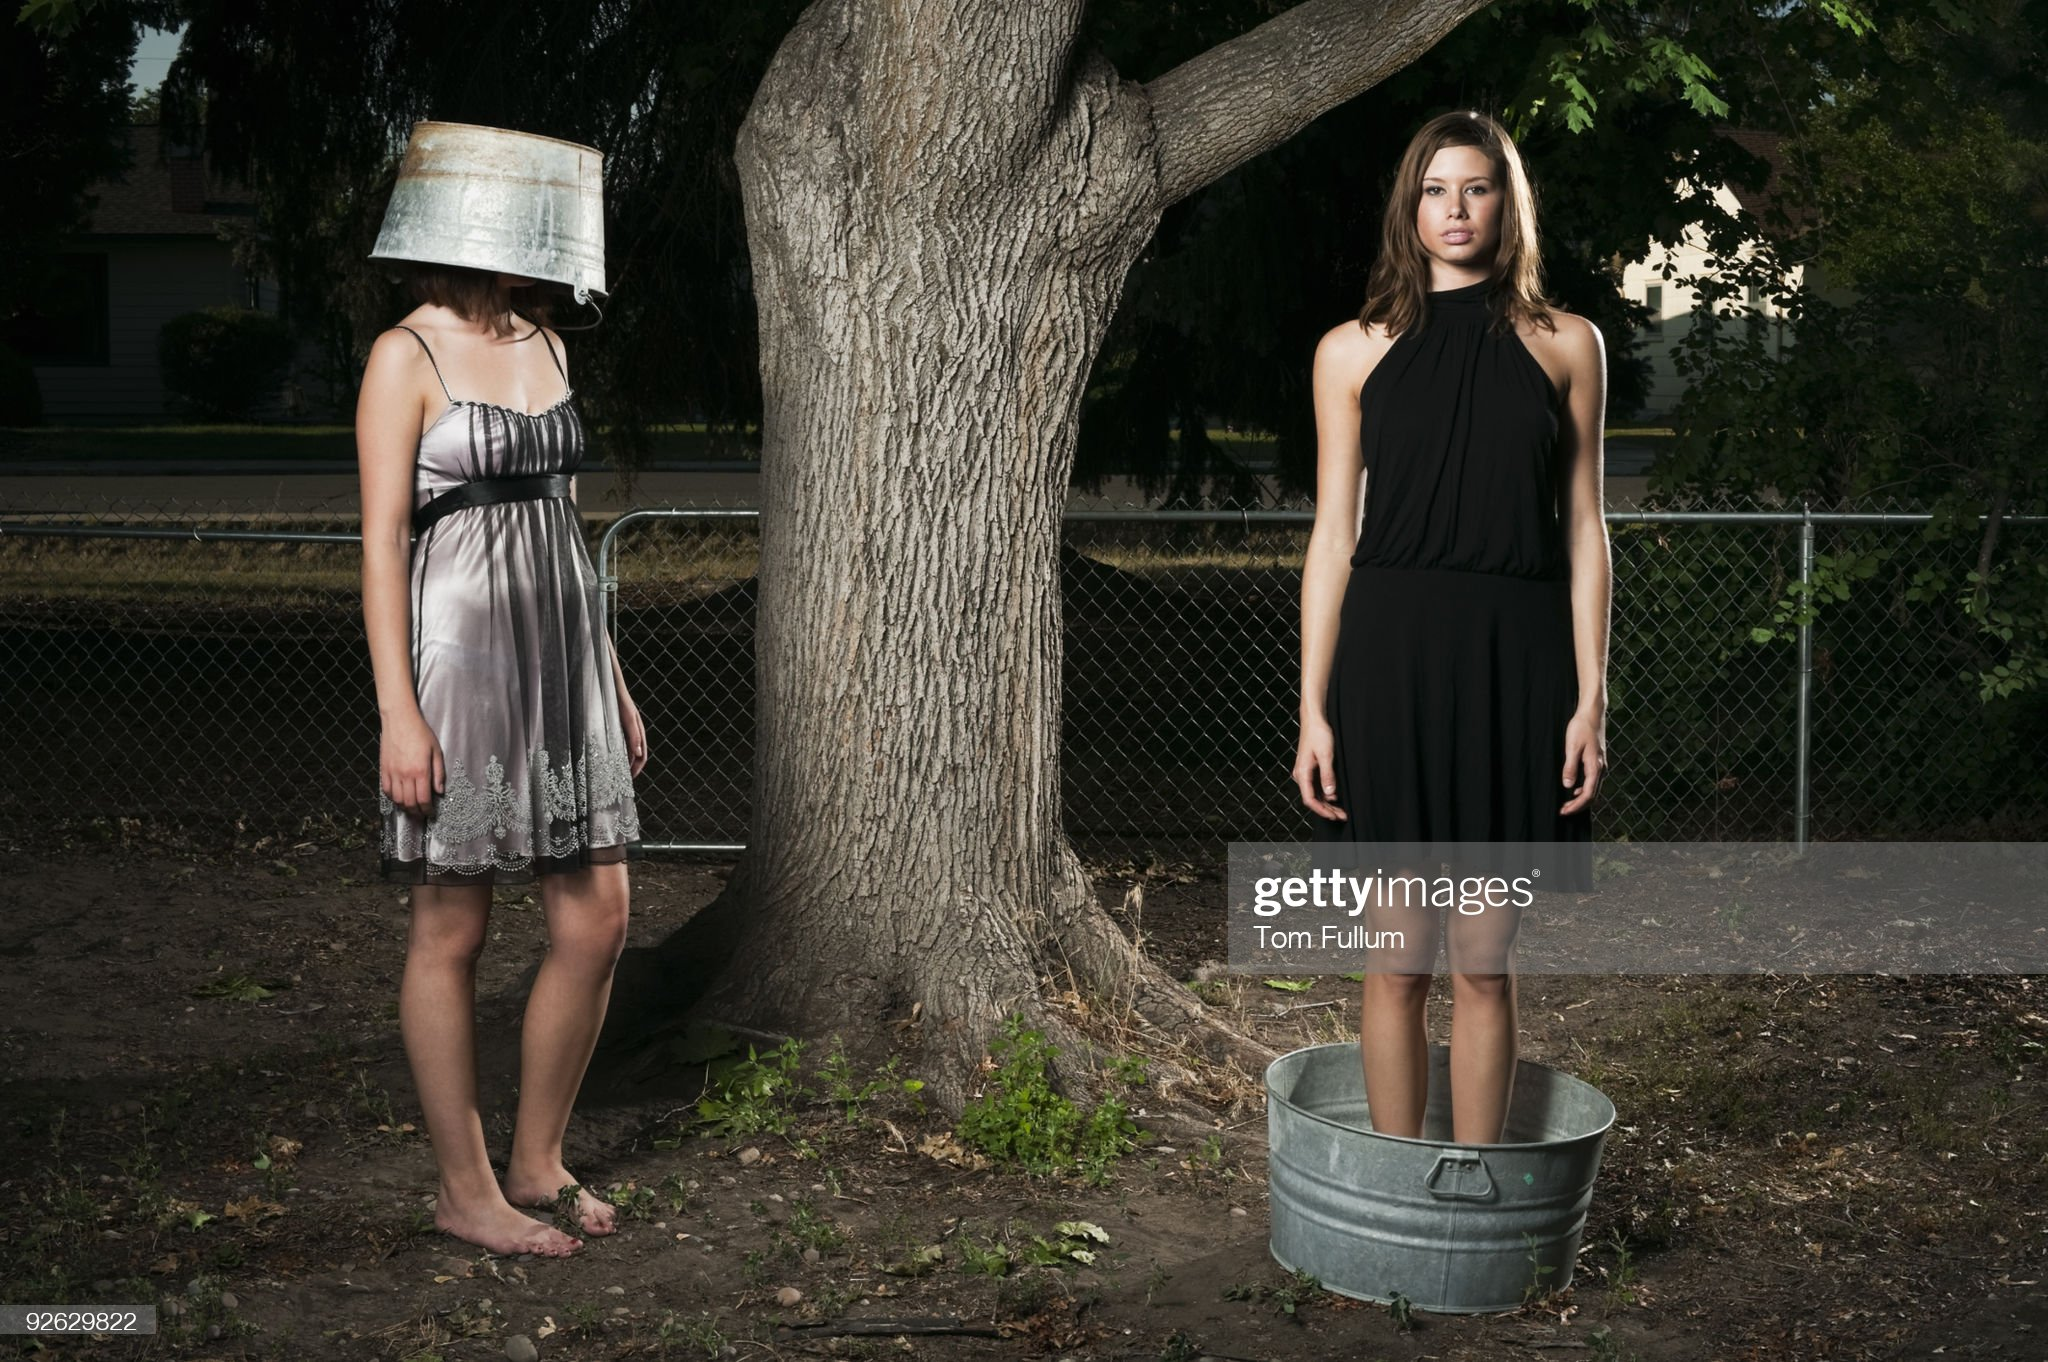 https://media.gettyimages.com/photos/two-young-woman-with-metal-buckets-picture-id92629822?s=2048x2048